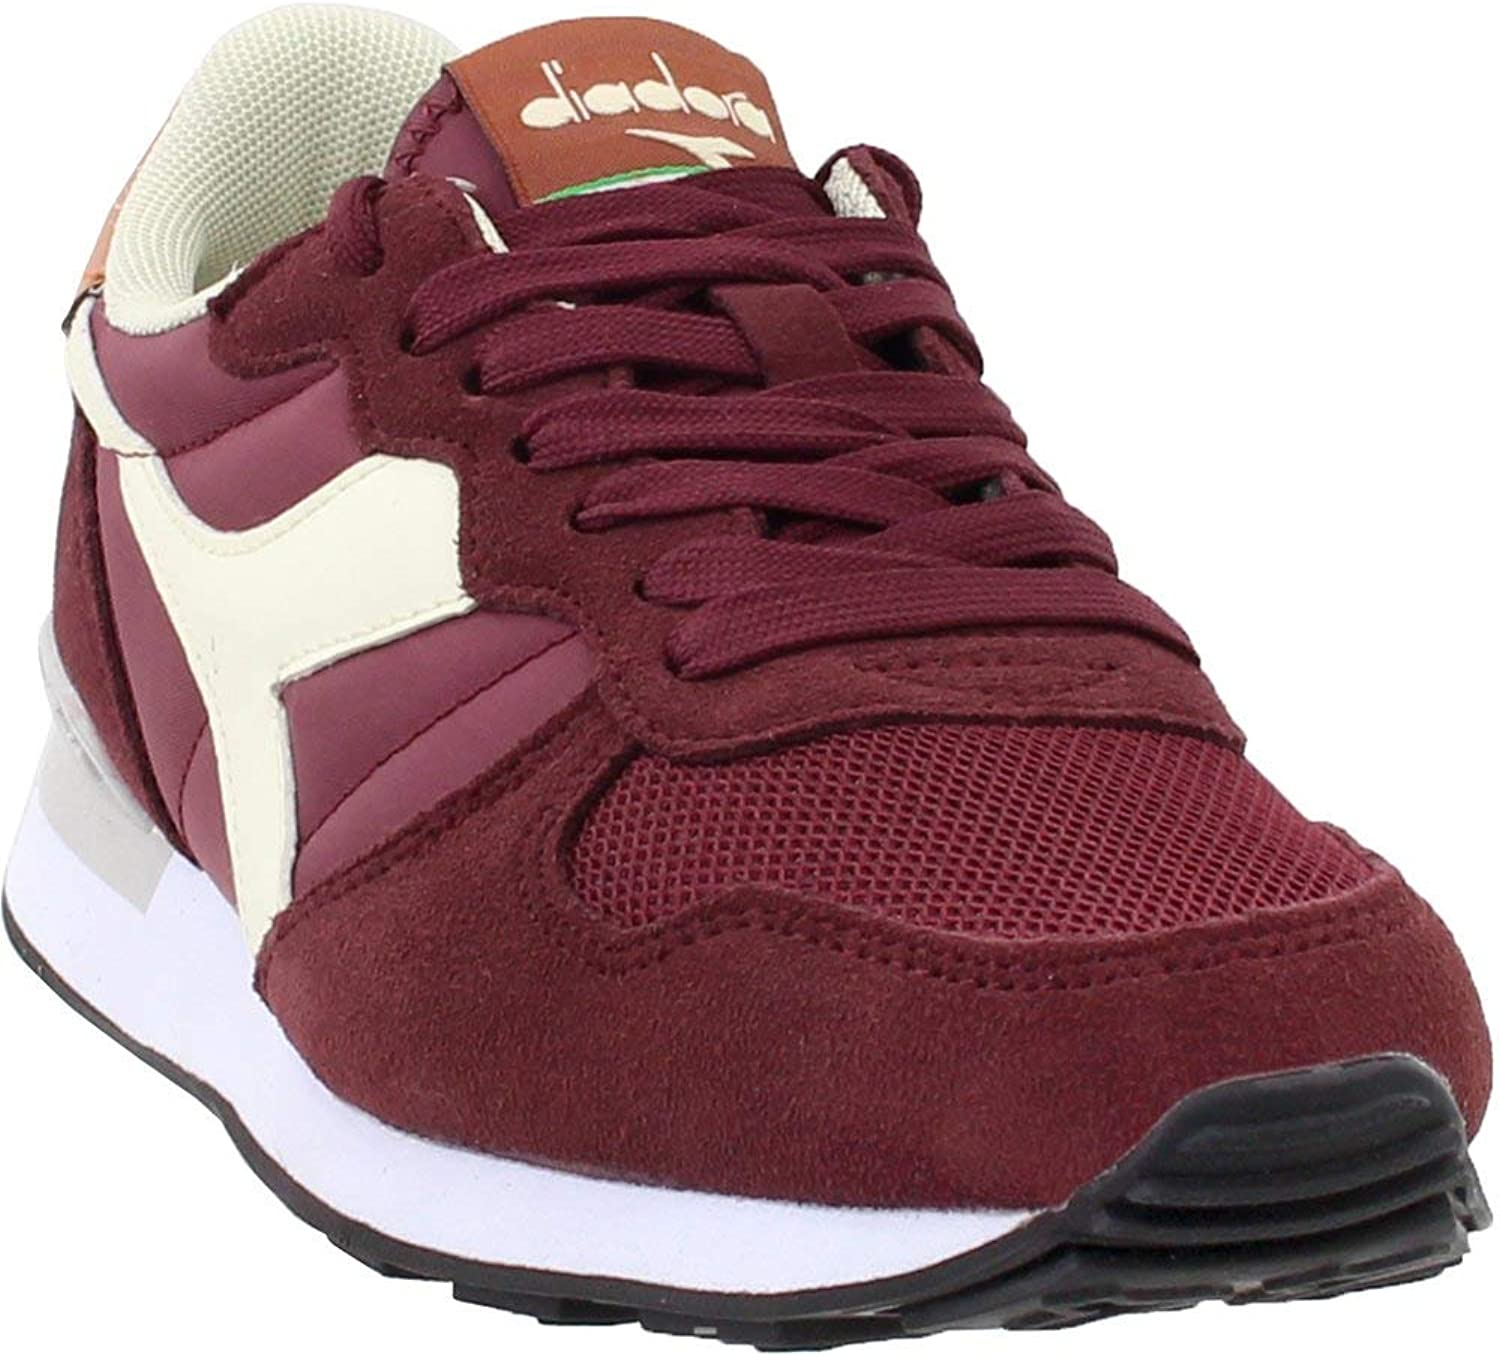 Diadora Mens Camaro Athletic & Sneakers